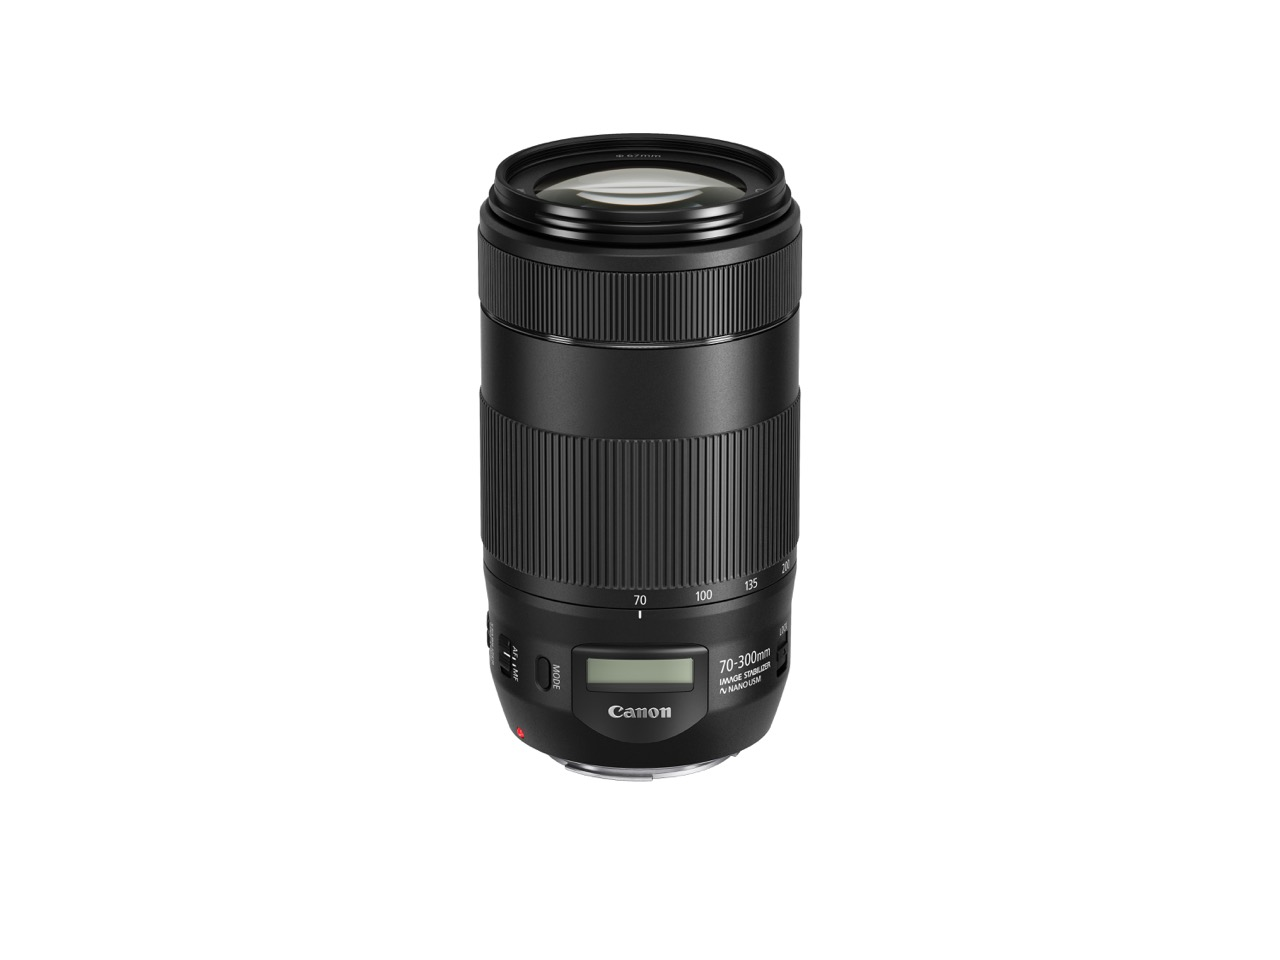 ef70-300mm-f4-5-6-is-ii-usm-image-3